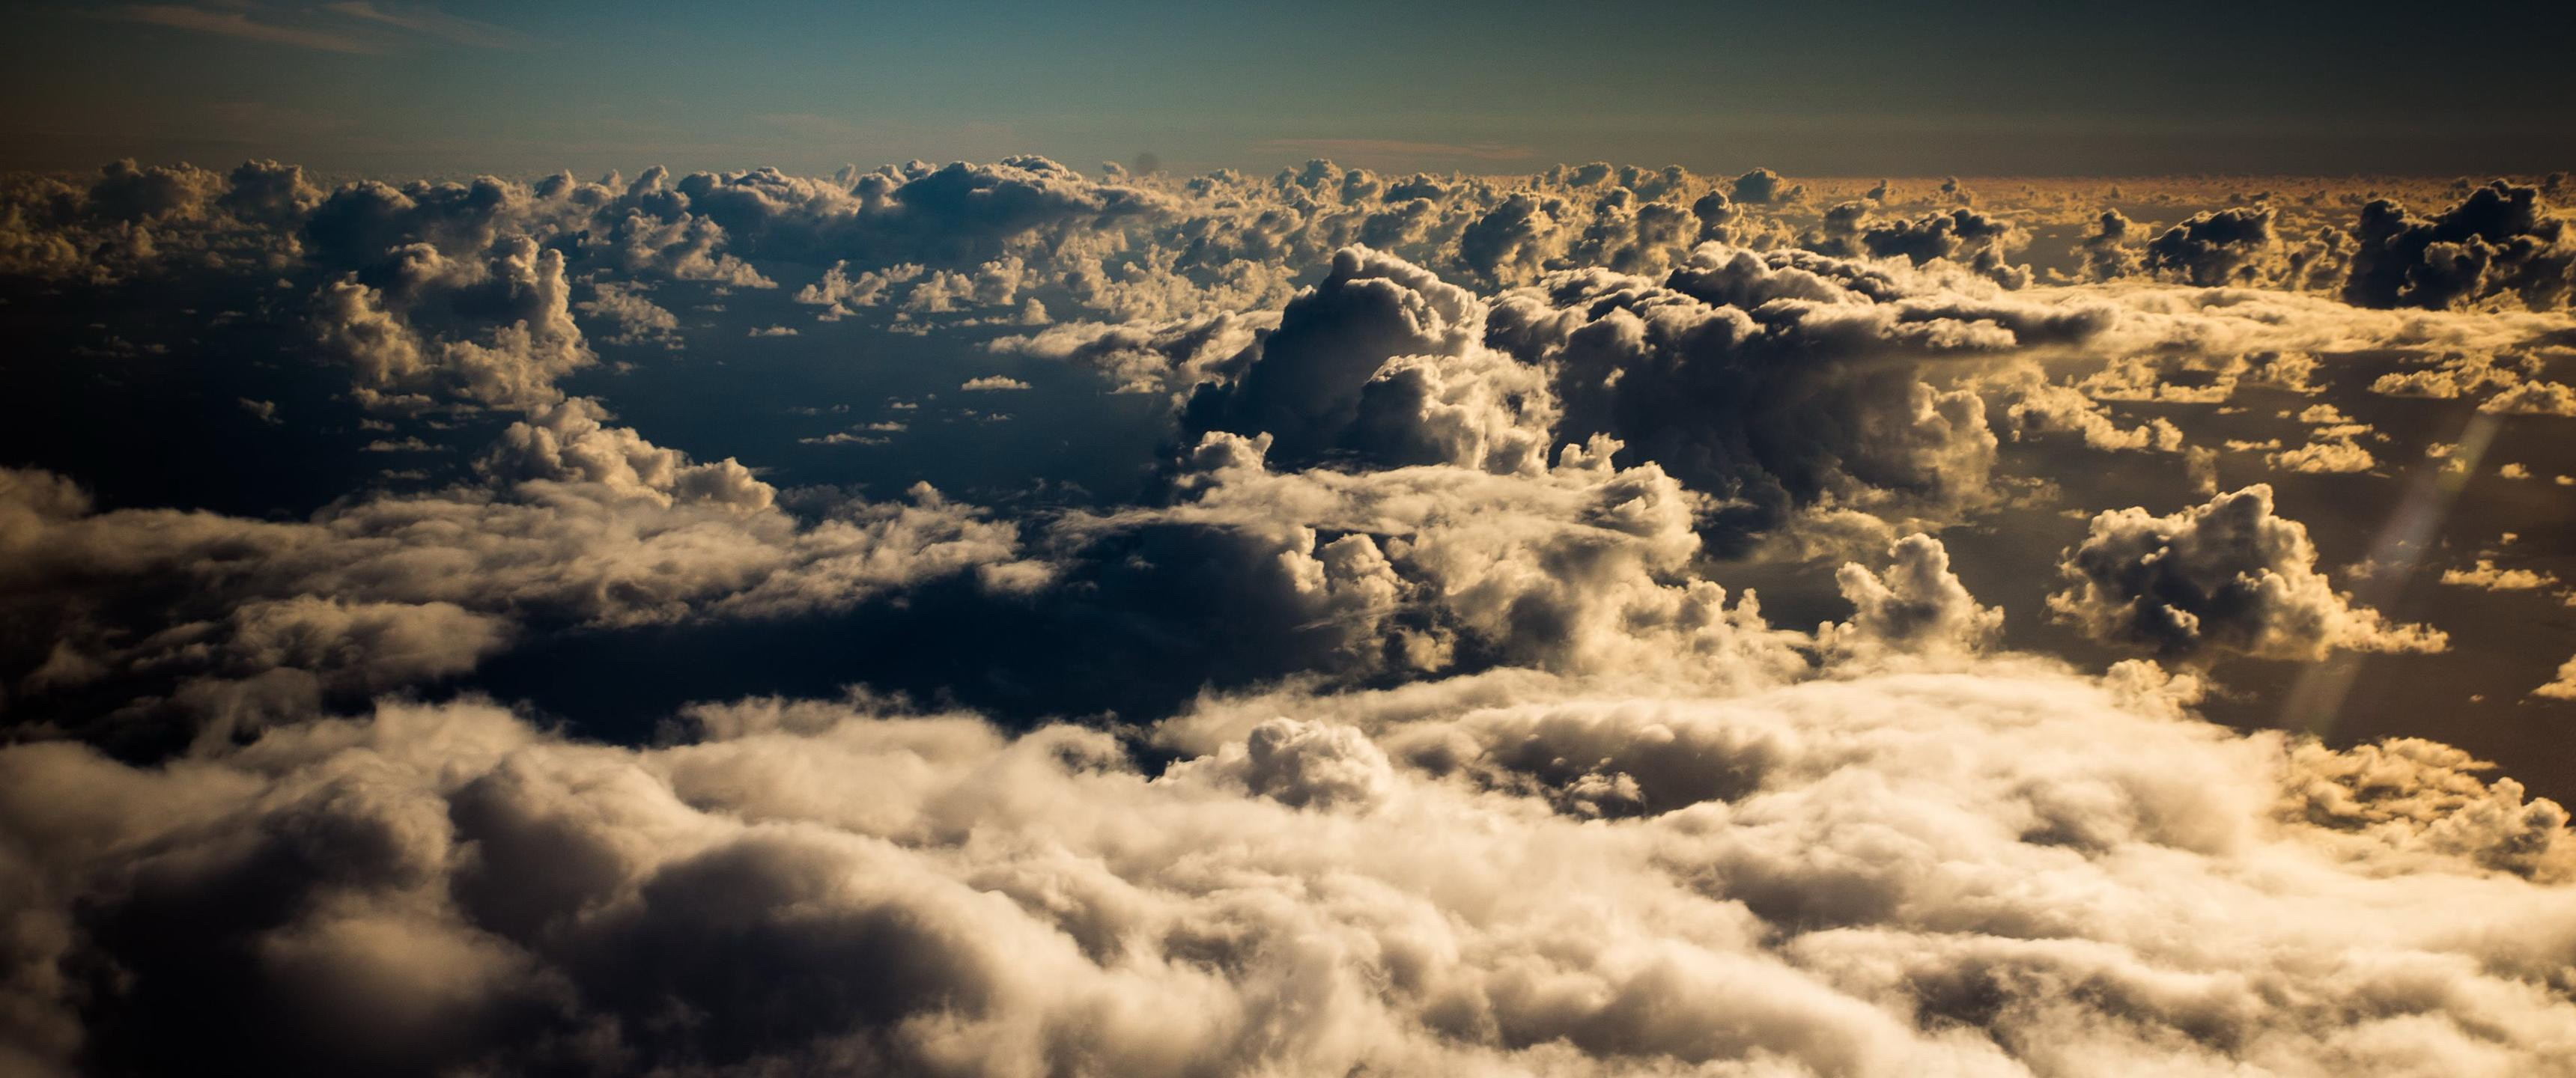 2k Car Wallpaper Clouds Aerial View Wallpaper Nature And Landscape